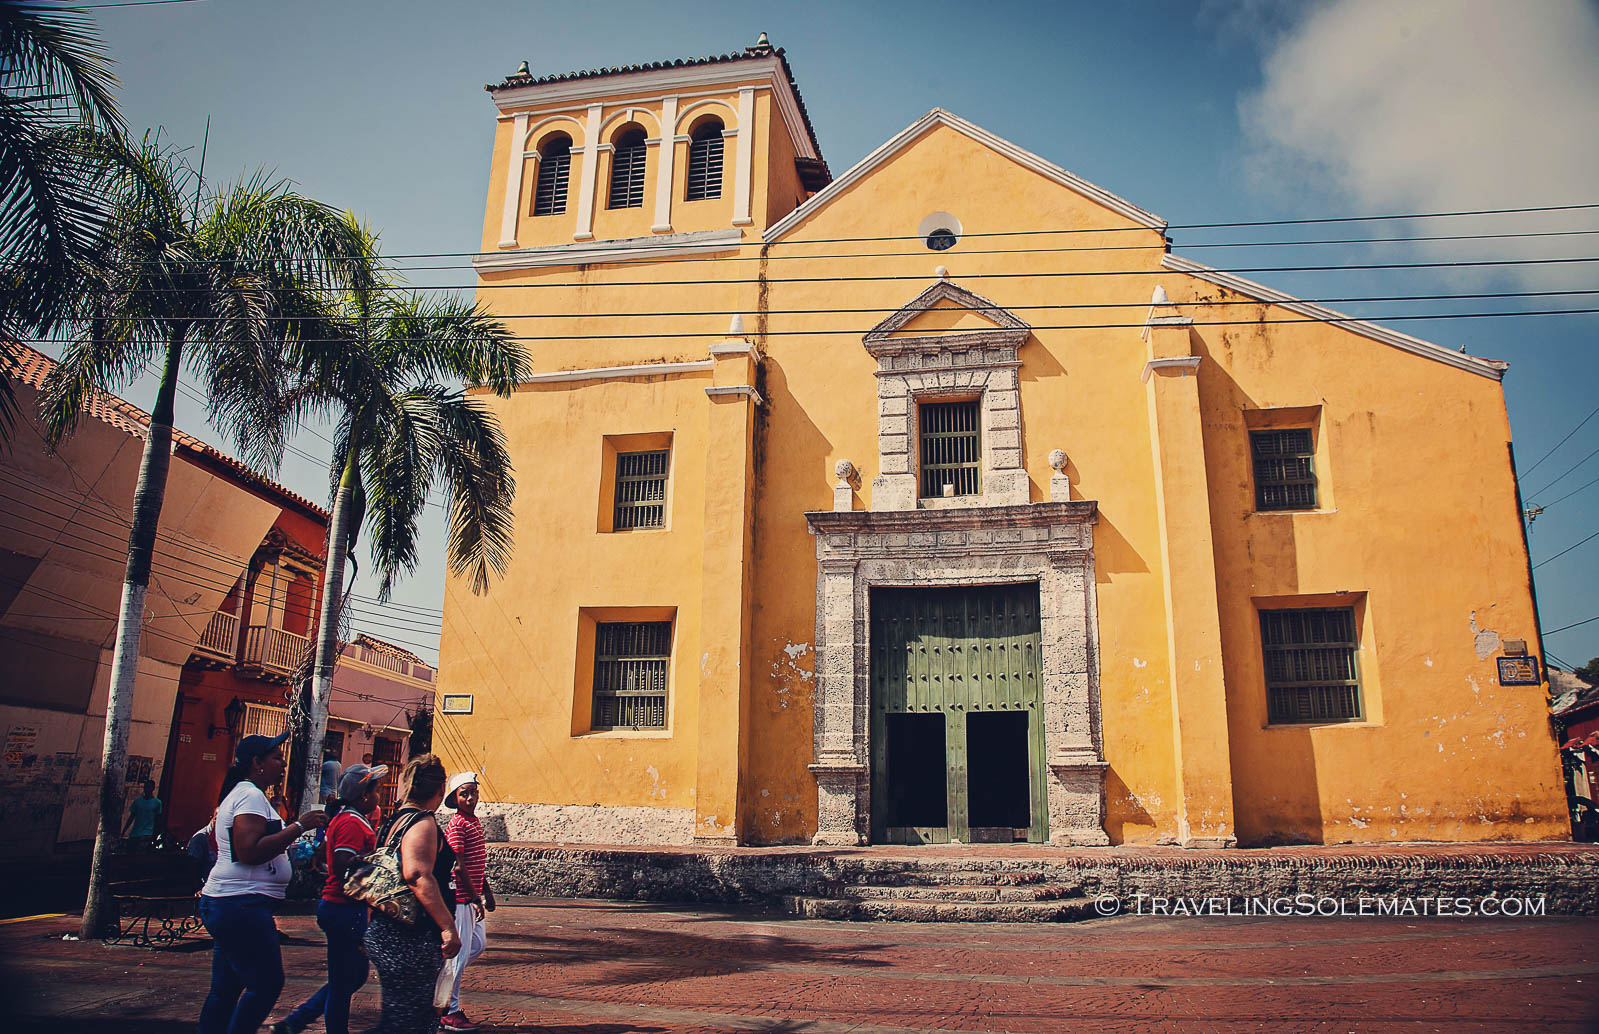 A Church in Getsemani, Cartagena, Colombia